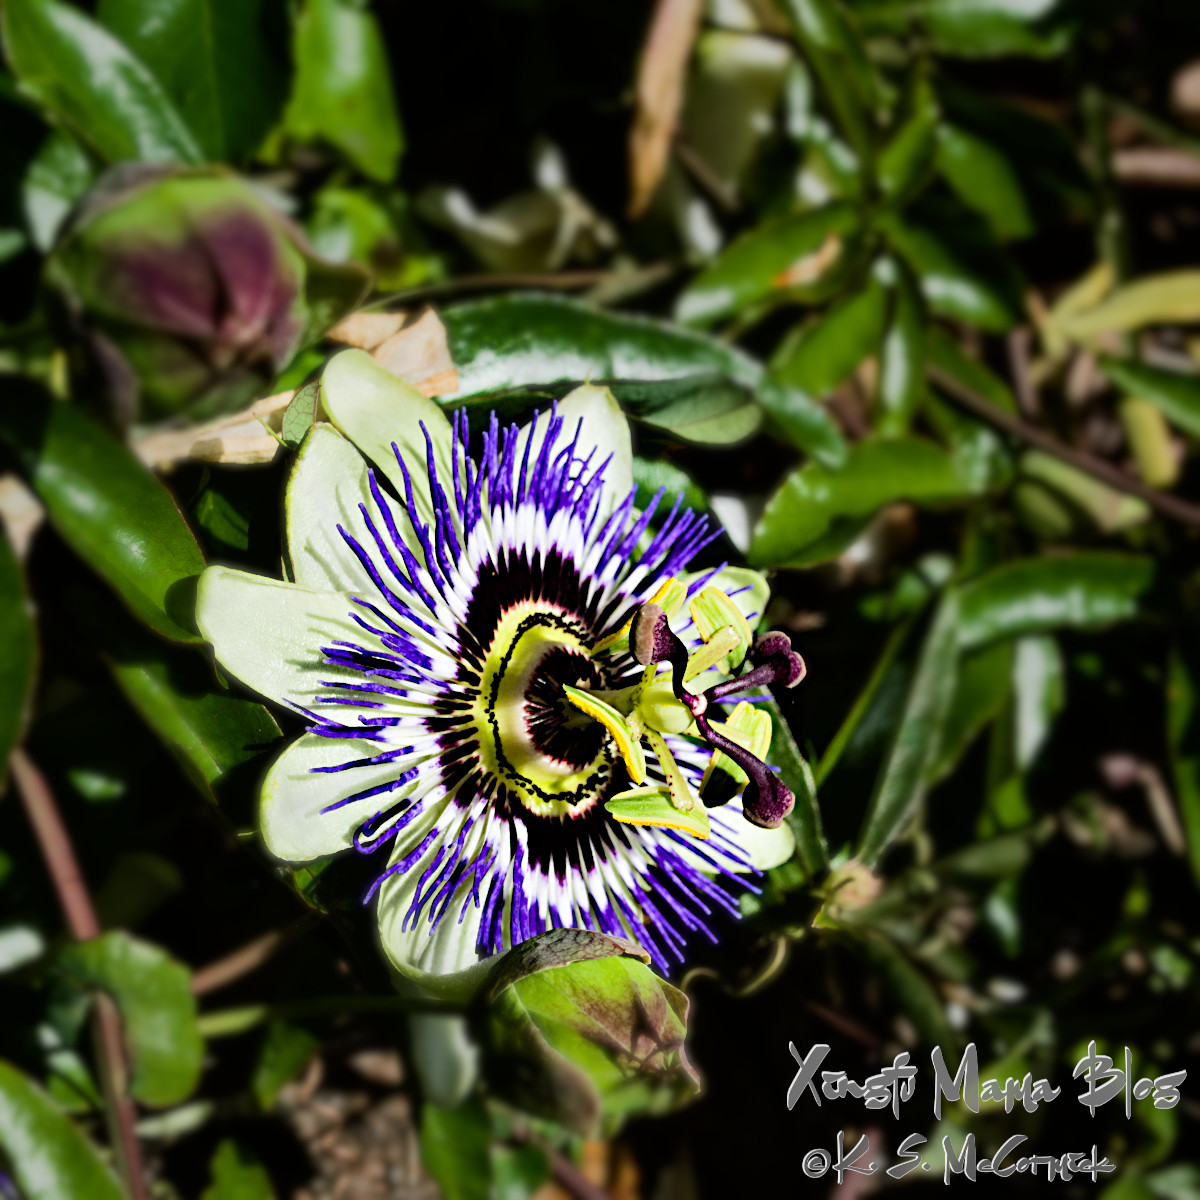 Passion flower with its dramatic purple, white and black markings and pop-out center.